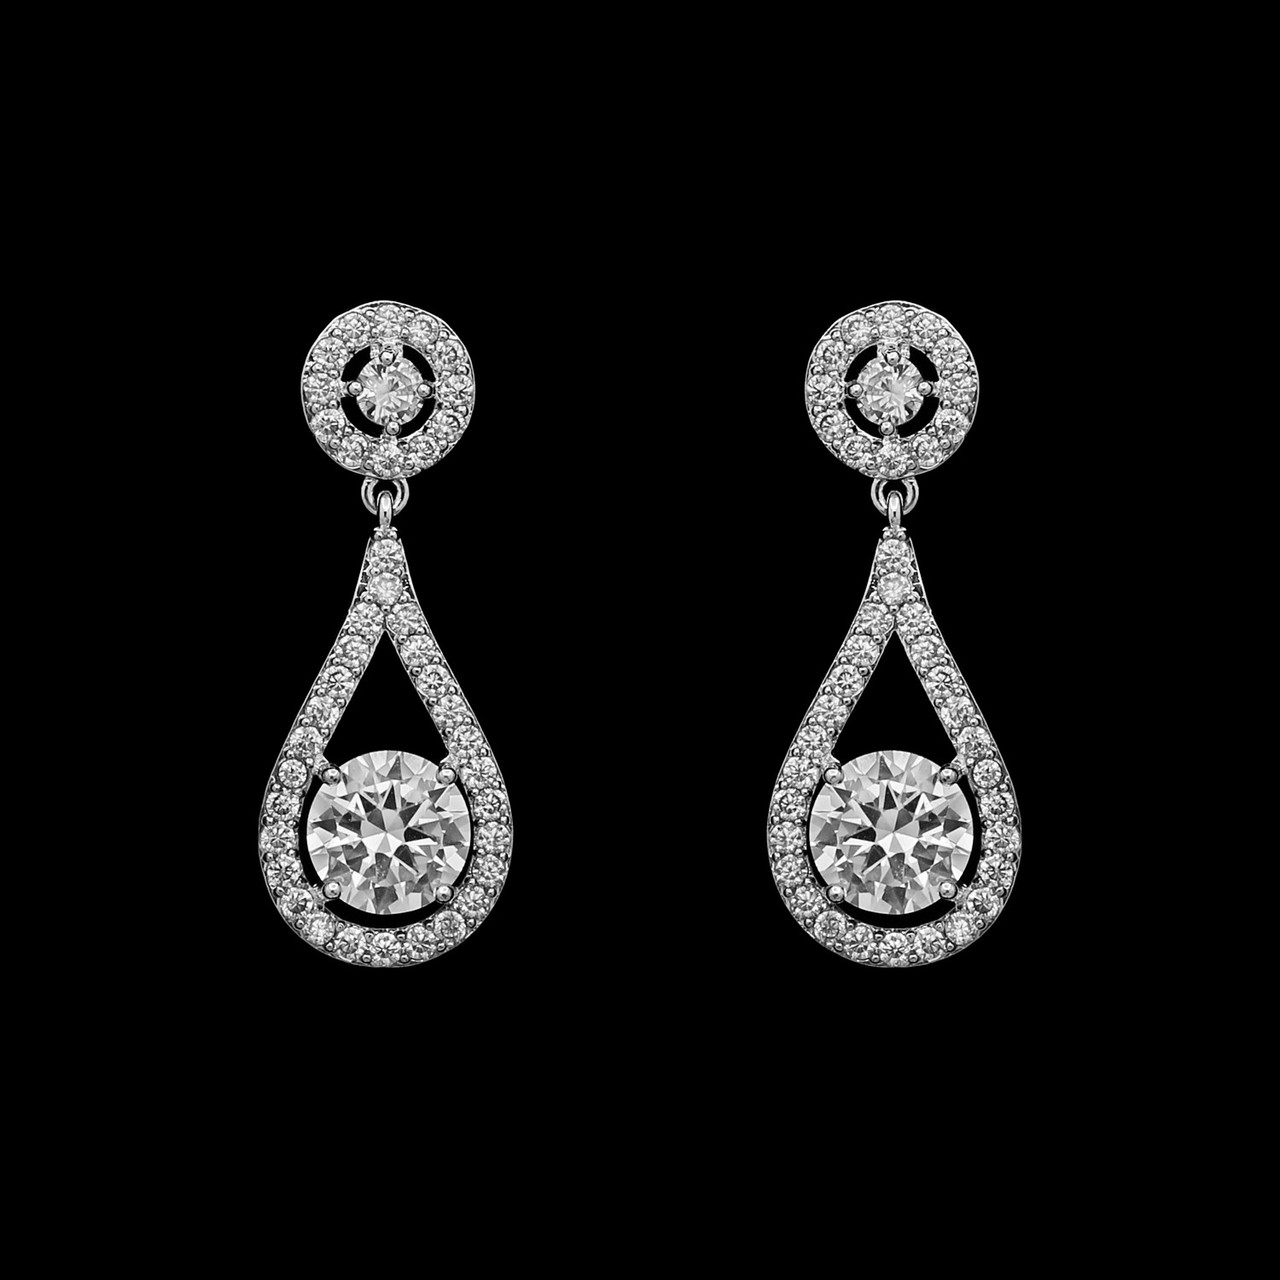 Formal Cubic Zirconia Earrings for Bridesmaids and Brides - #336